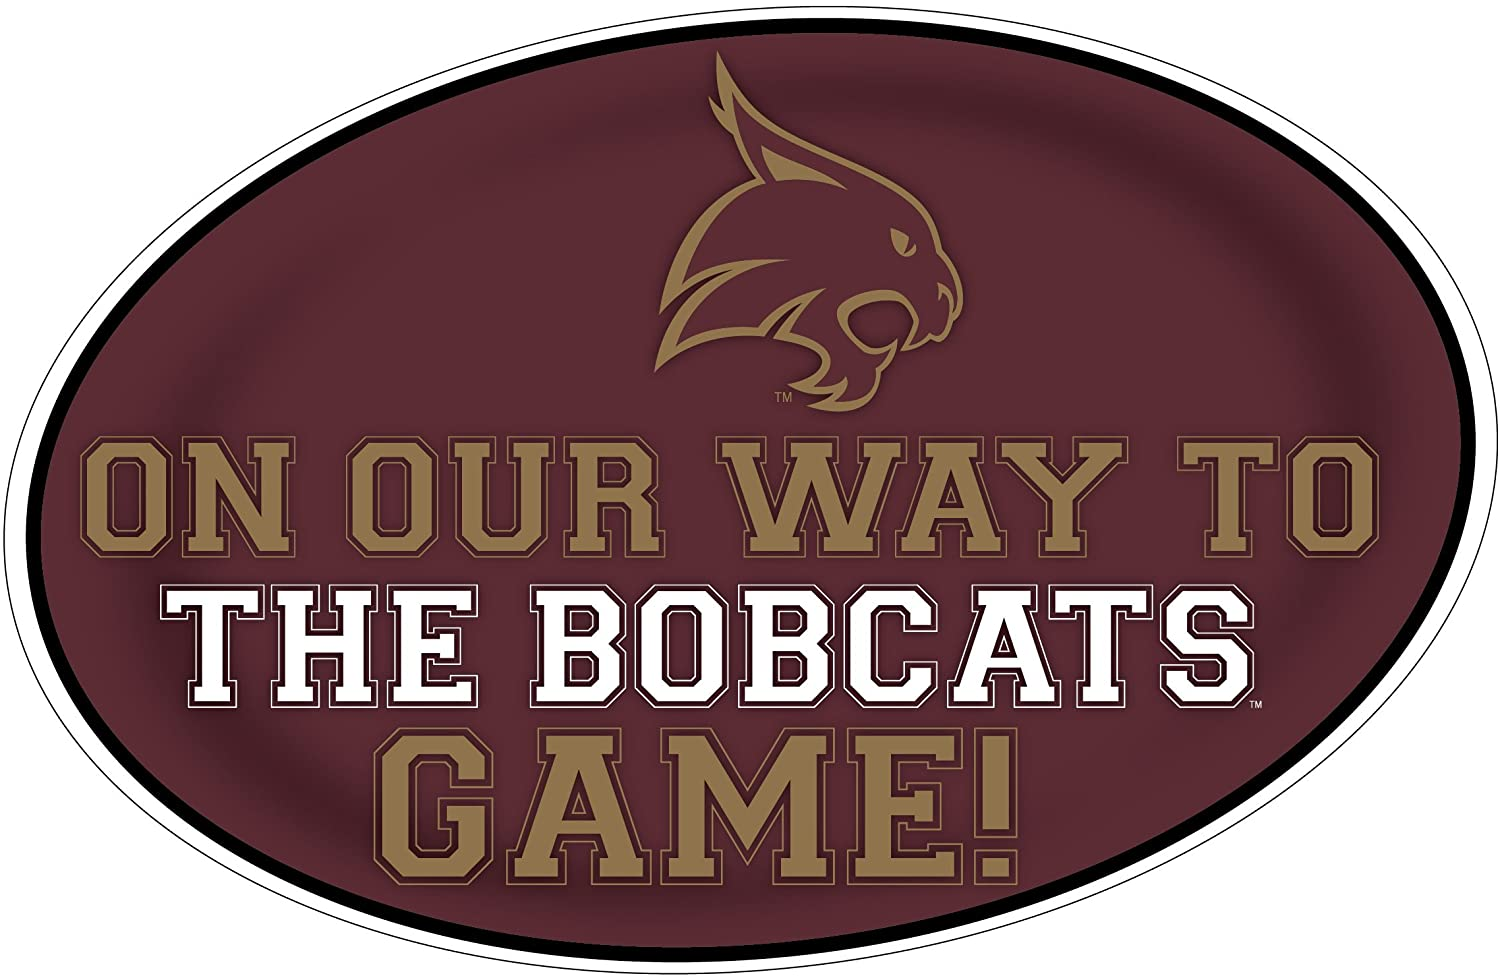 TEXAS STATE BOBCATS HEADING TO THE GAME-TEXAS STATE UNIVERSITY 11X17 INCH JUMBO CAR MAGNET